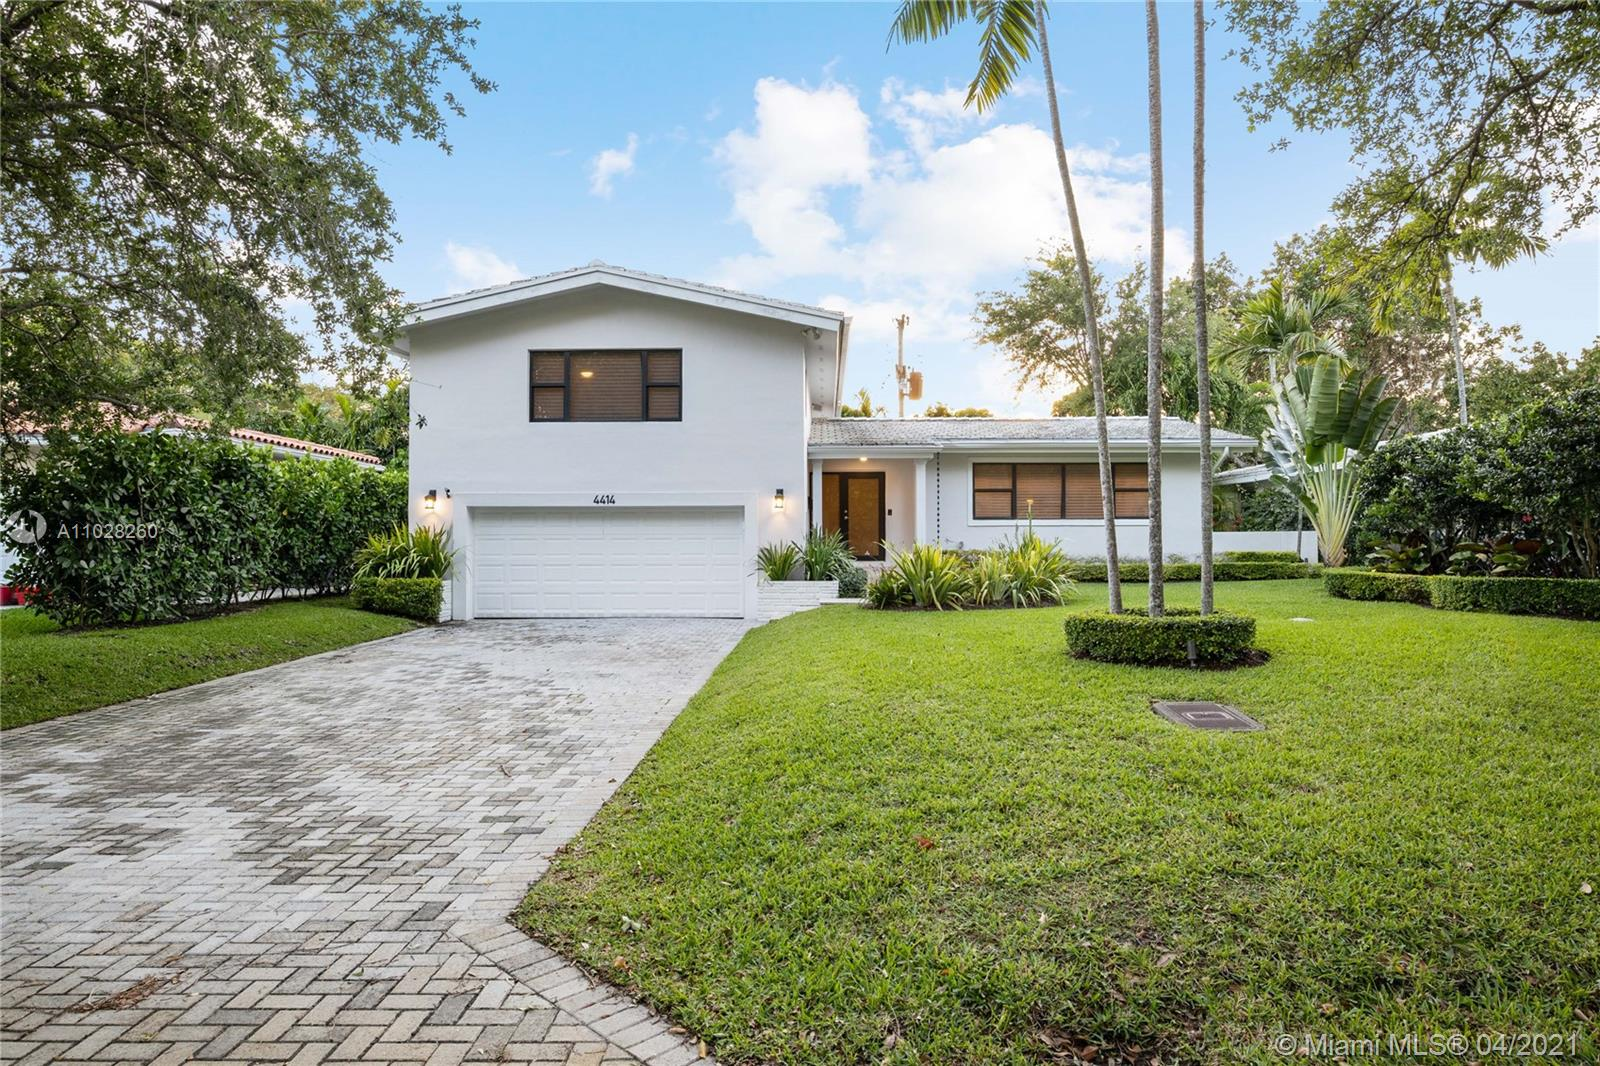 South Miami - 4414 Toledo St, Coral Gables, FL 33146